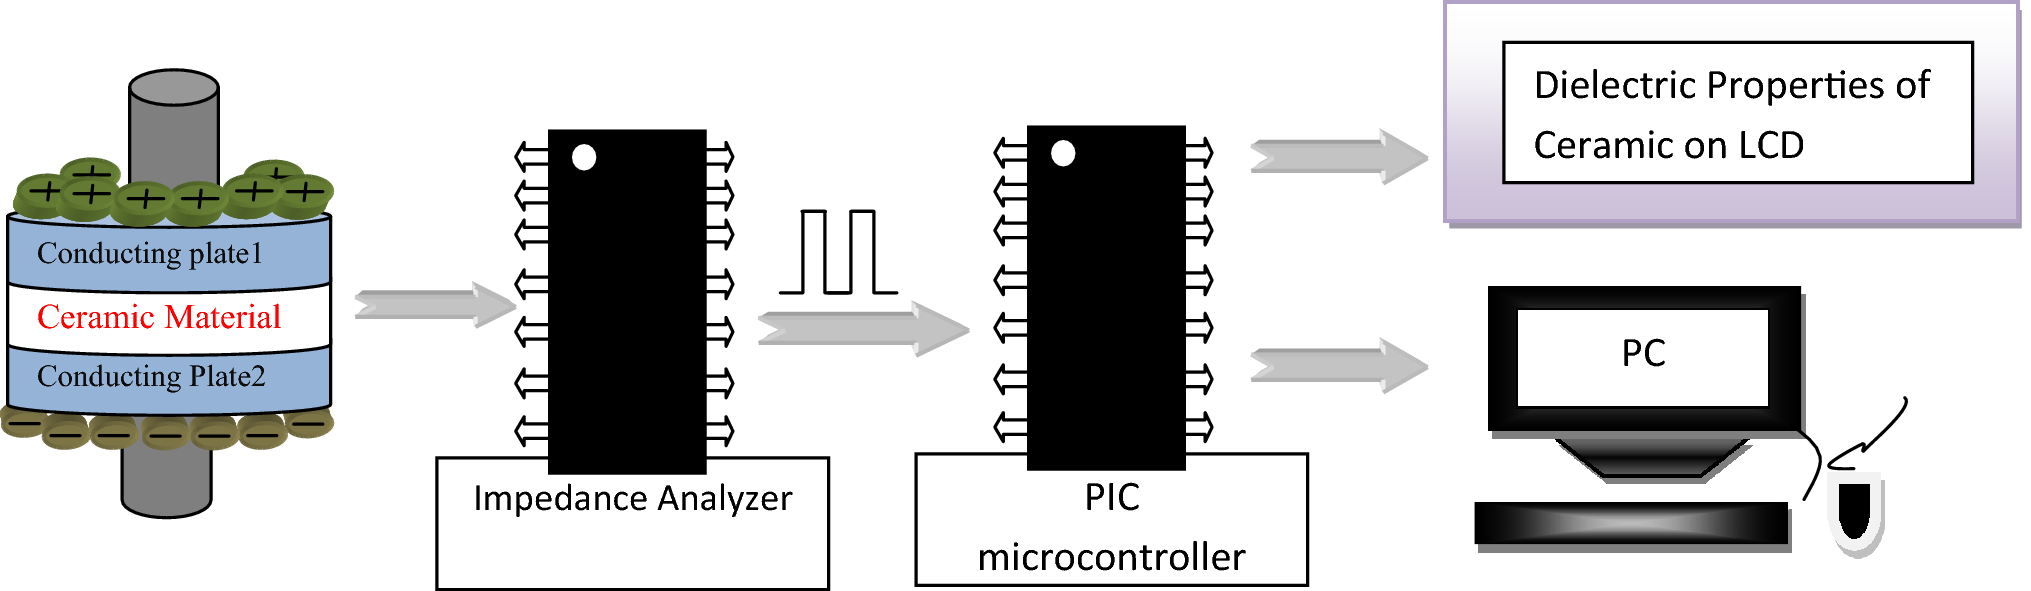 Design and Development of Cost-Effective System for the Measurement